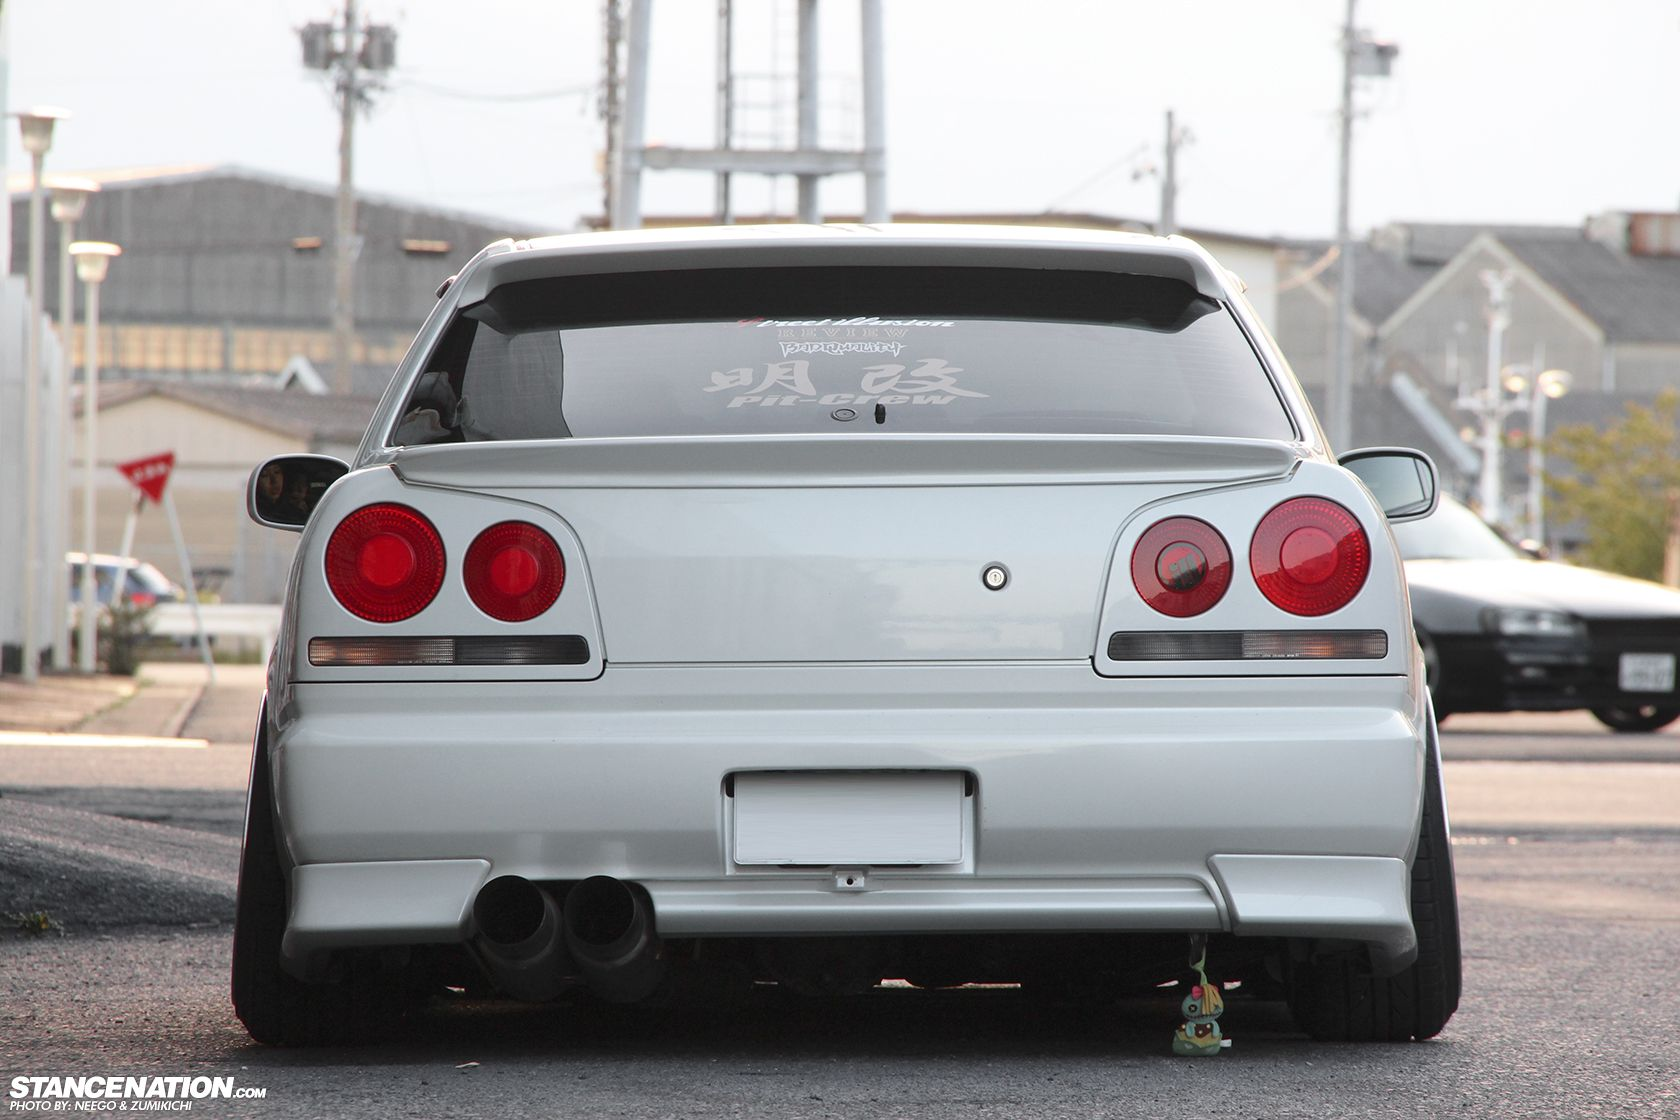 The Forgotten One // Kazuyukiu0027s Nissan Skyline.